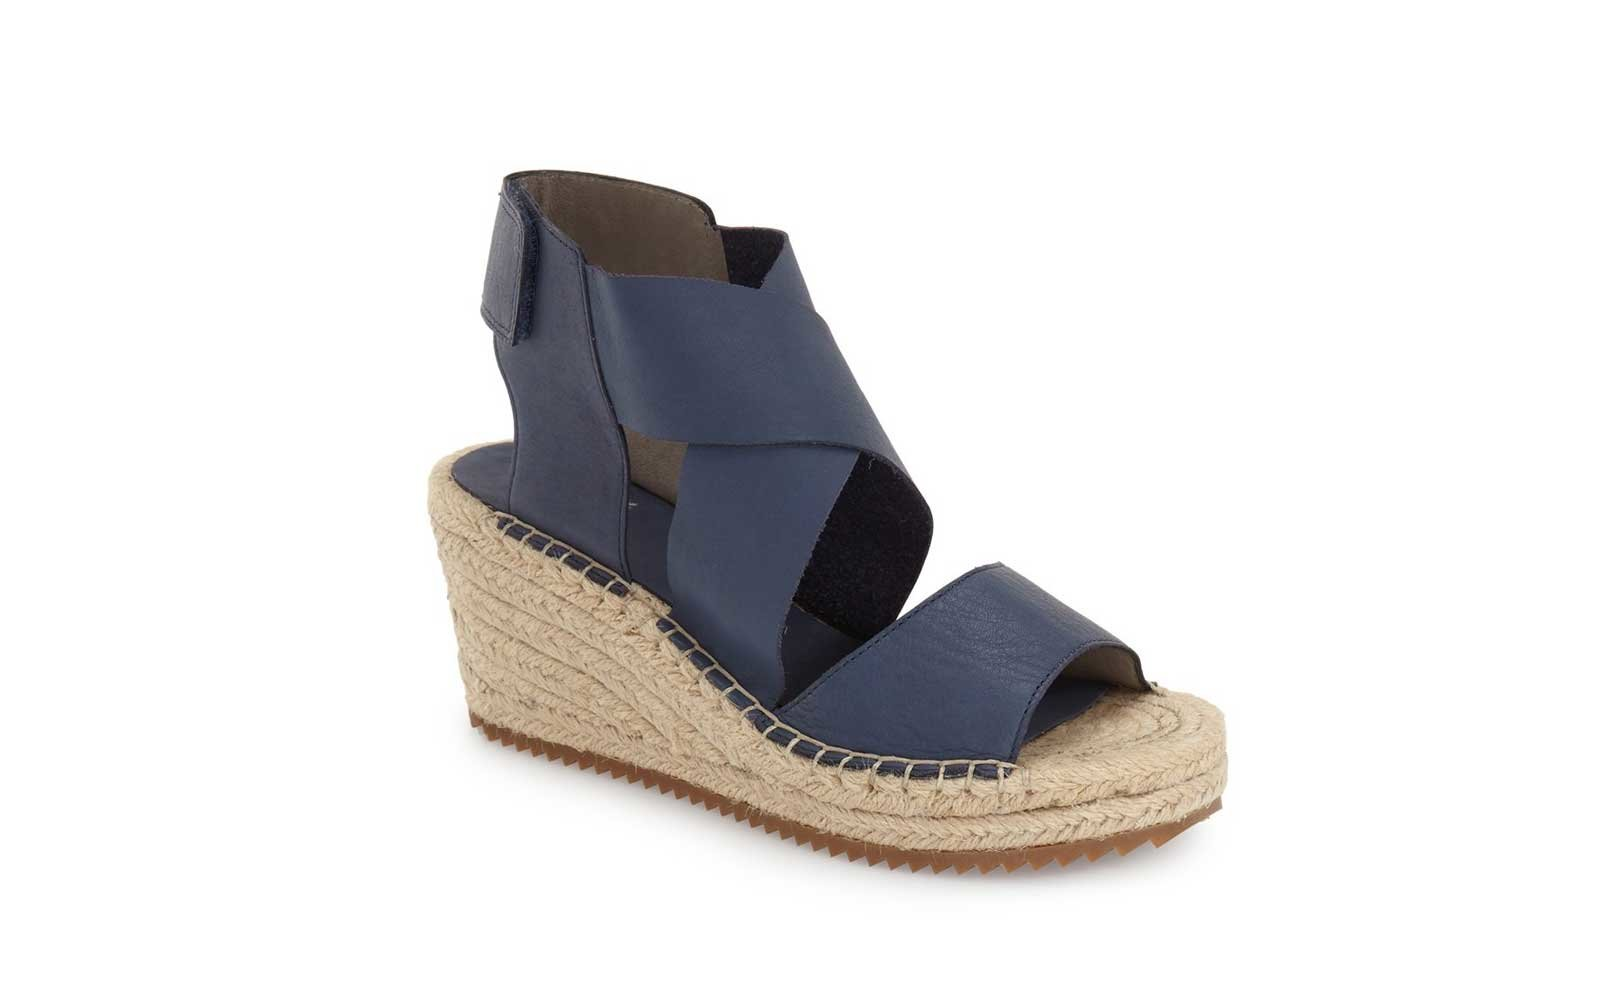 66e92ef61a5d93 Walkable Wedges  Eileen Fisher  Willow  Espadrille Wedge Sandal. eileen  fisher womens comfortable walking sandals